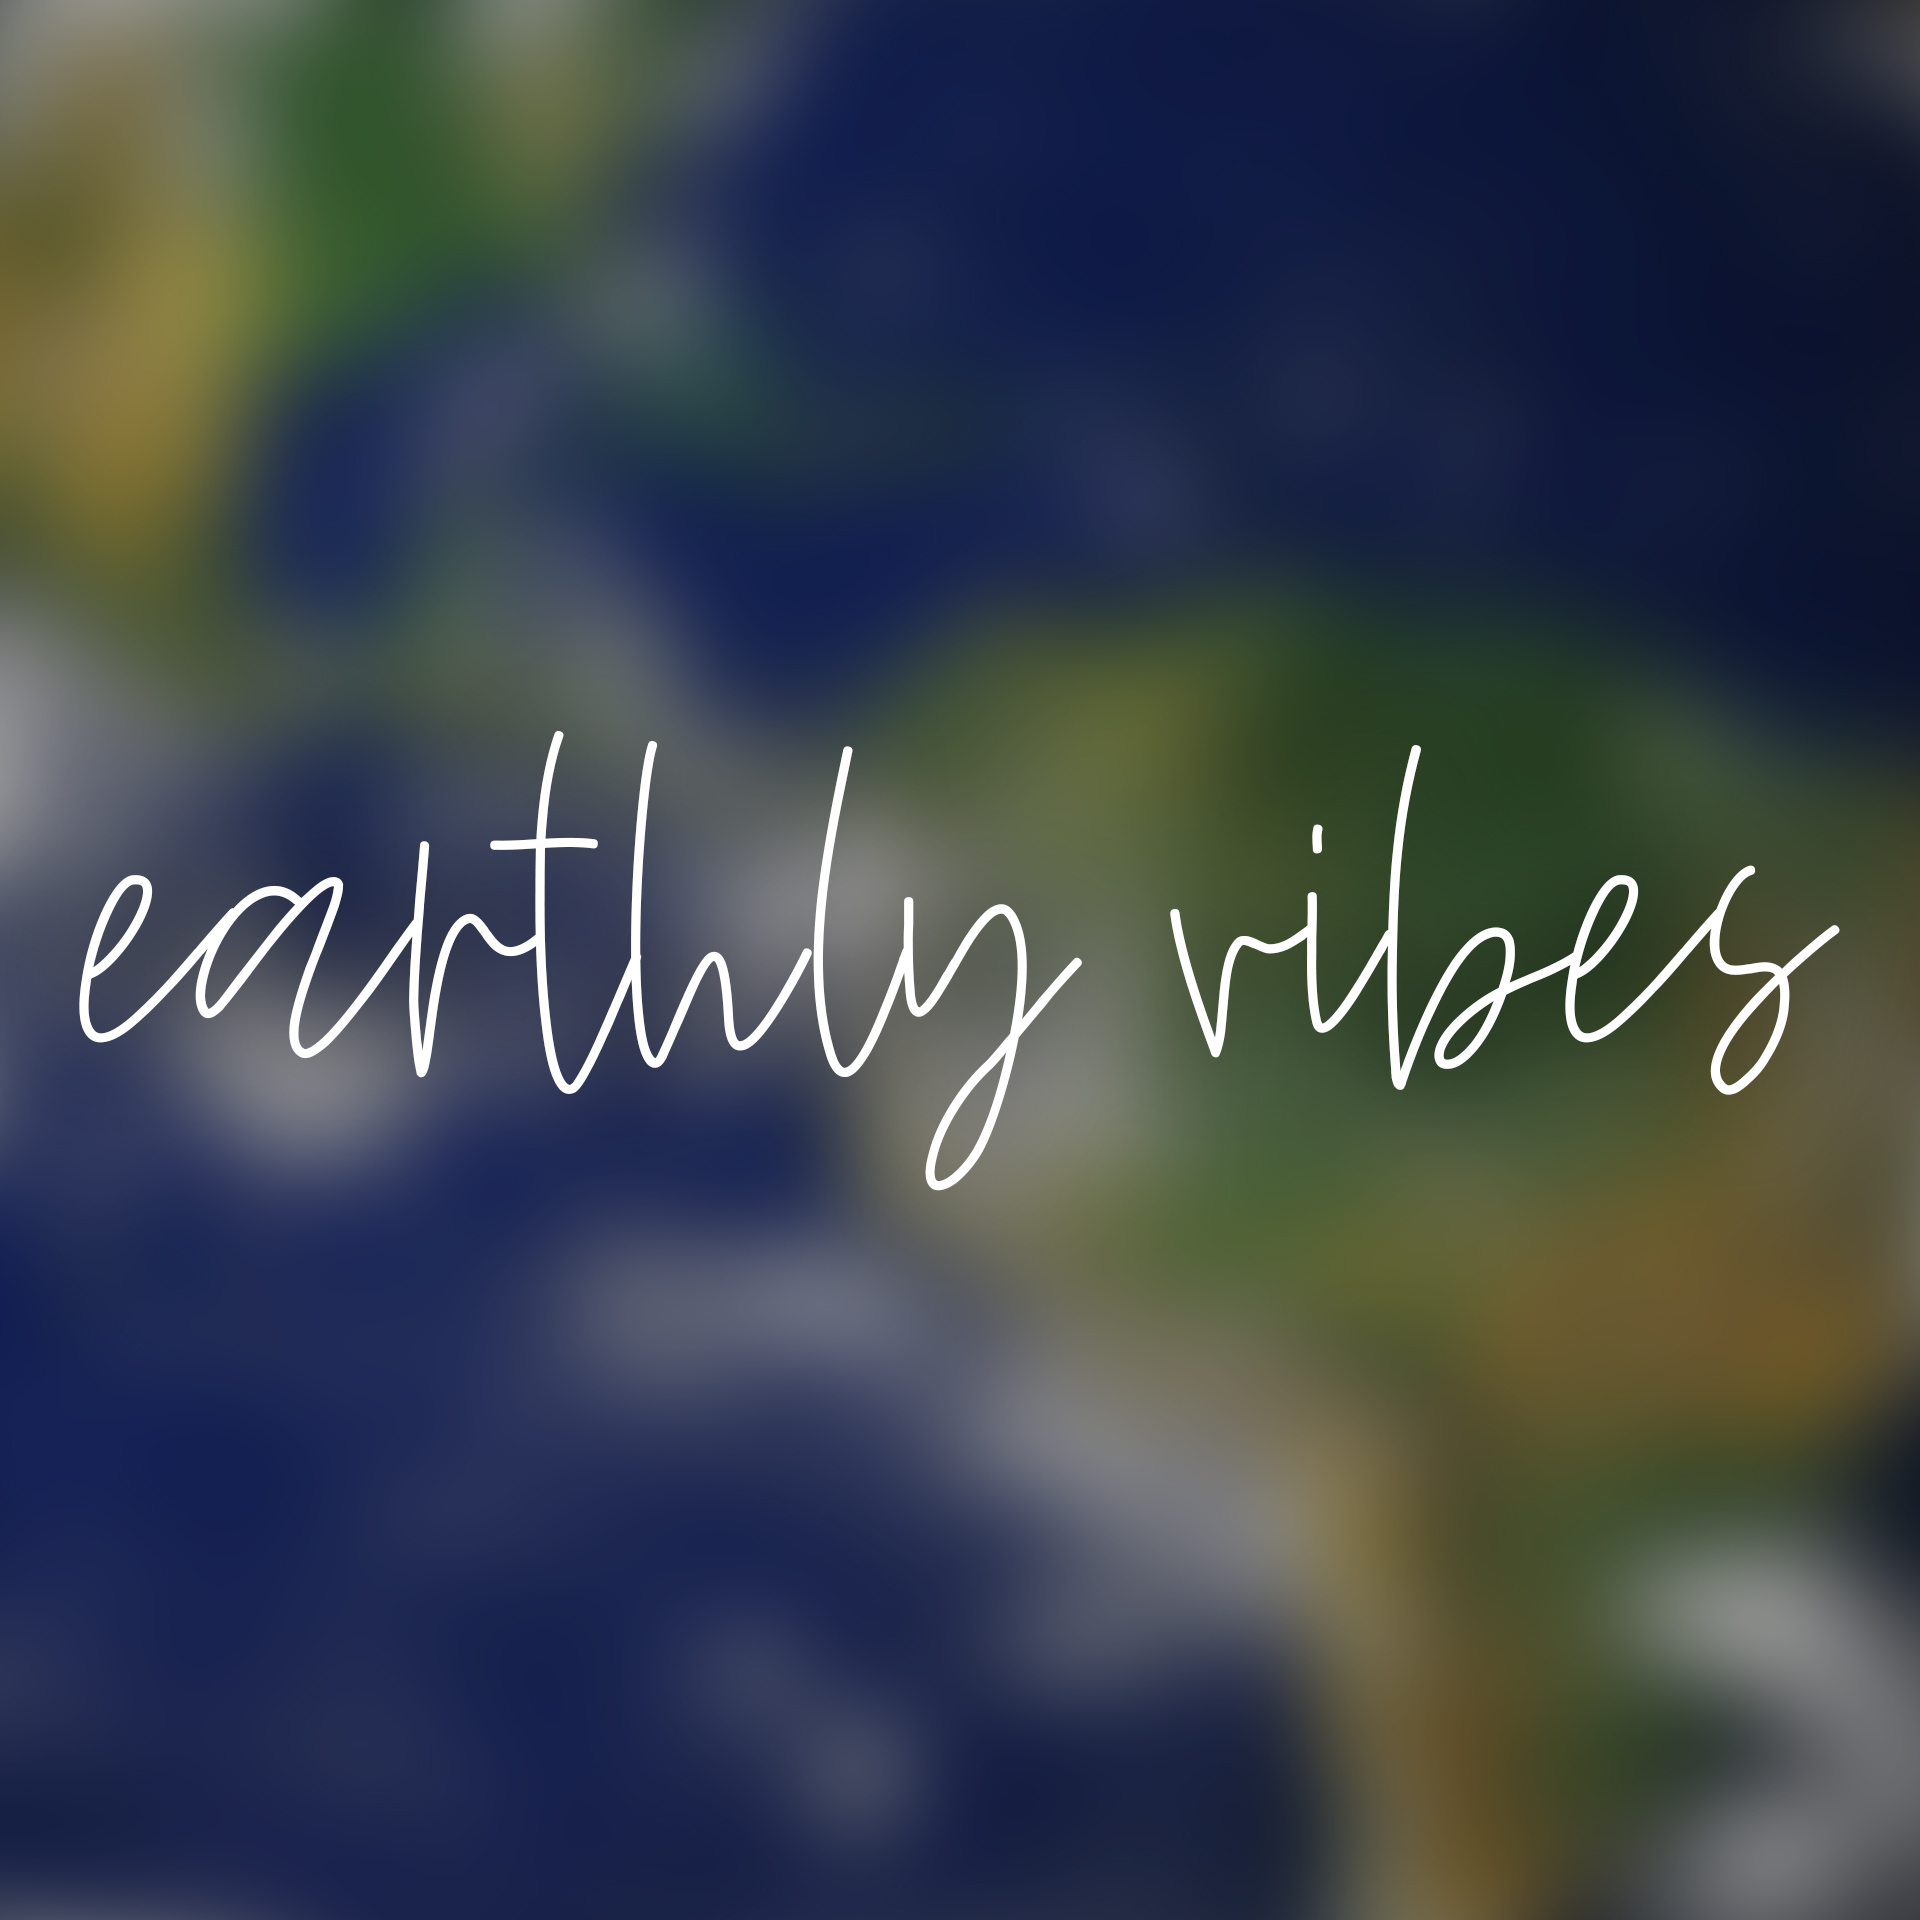 earthly vibes art.jpg